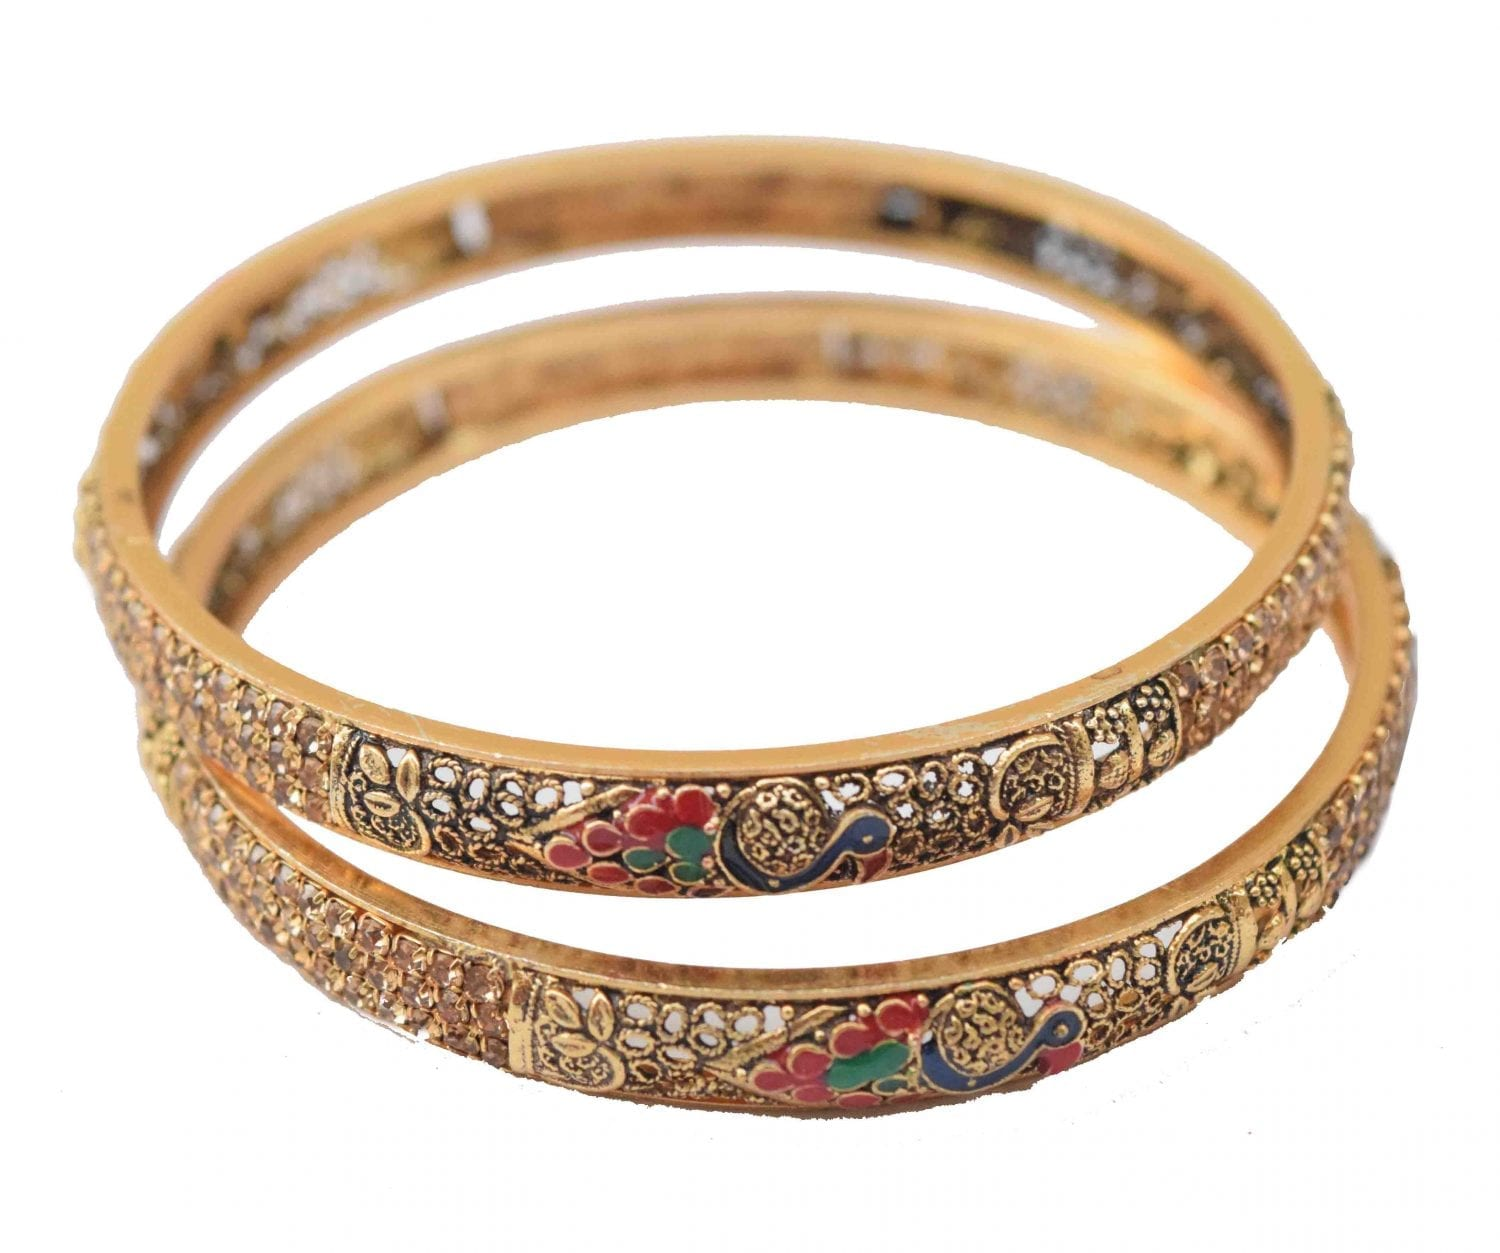 Antique Golden designer bangles with multicolor meena work BN164 1